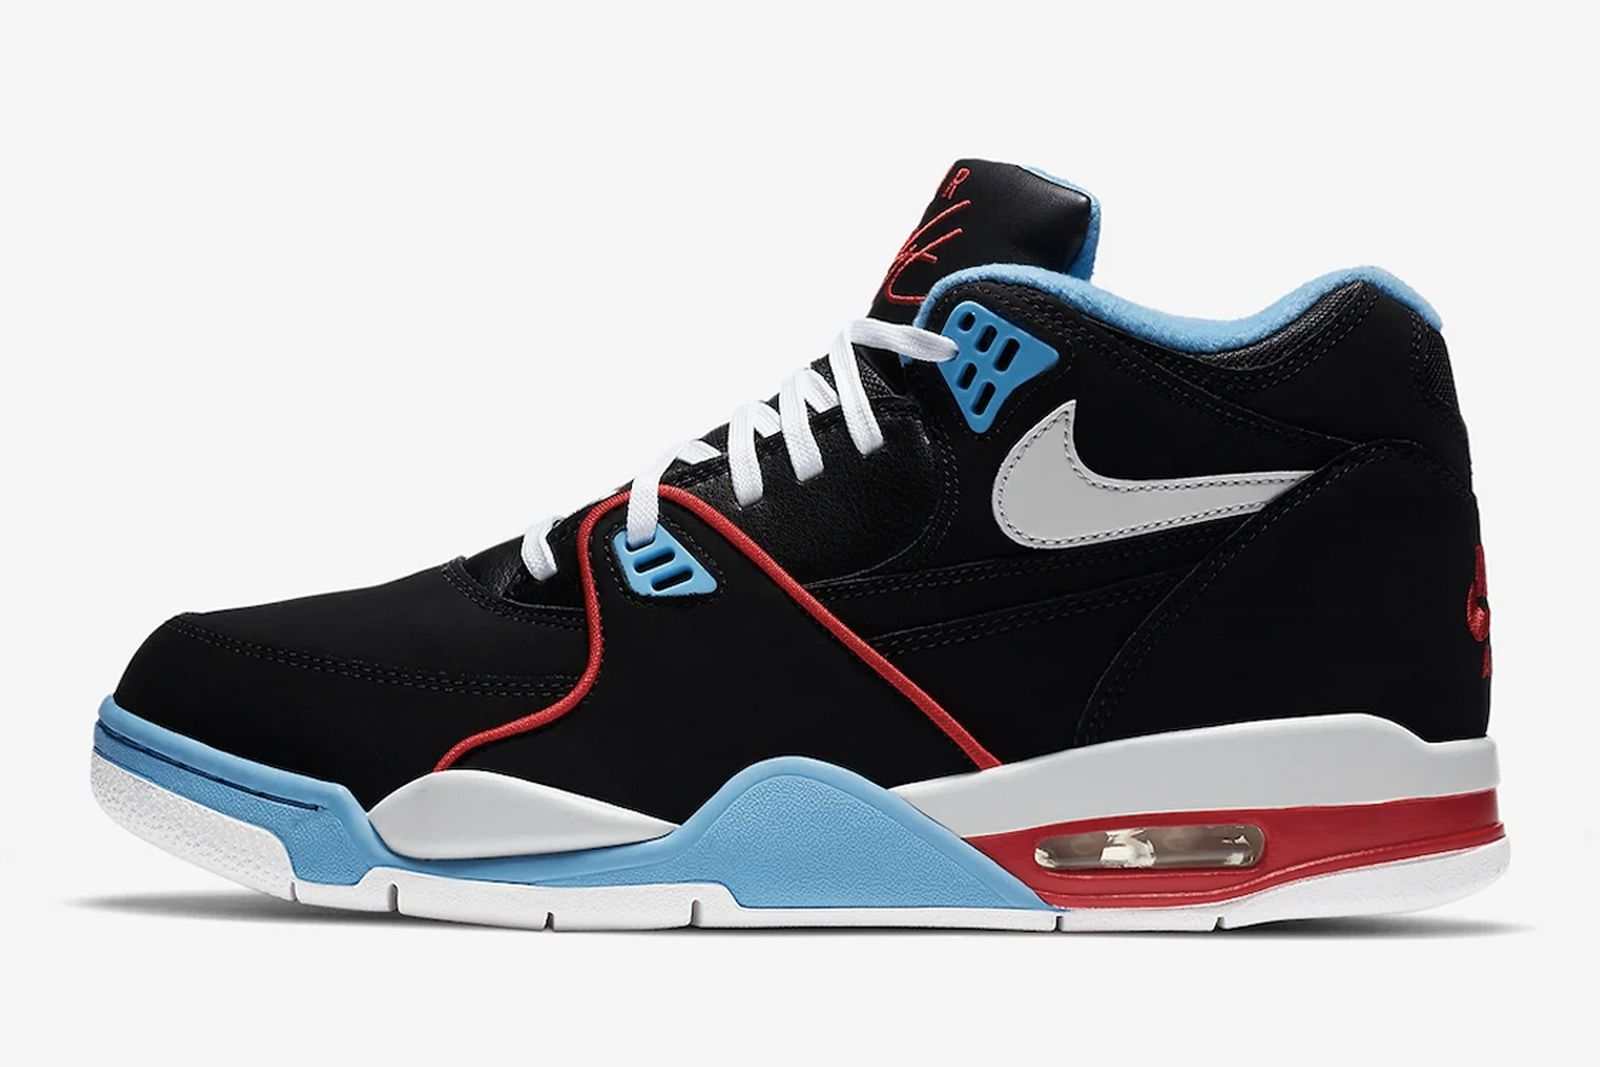 nike-air-flight-89-chicago-release-date-price-02